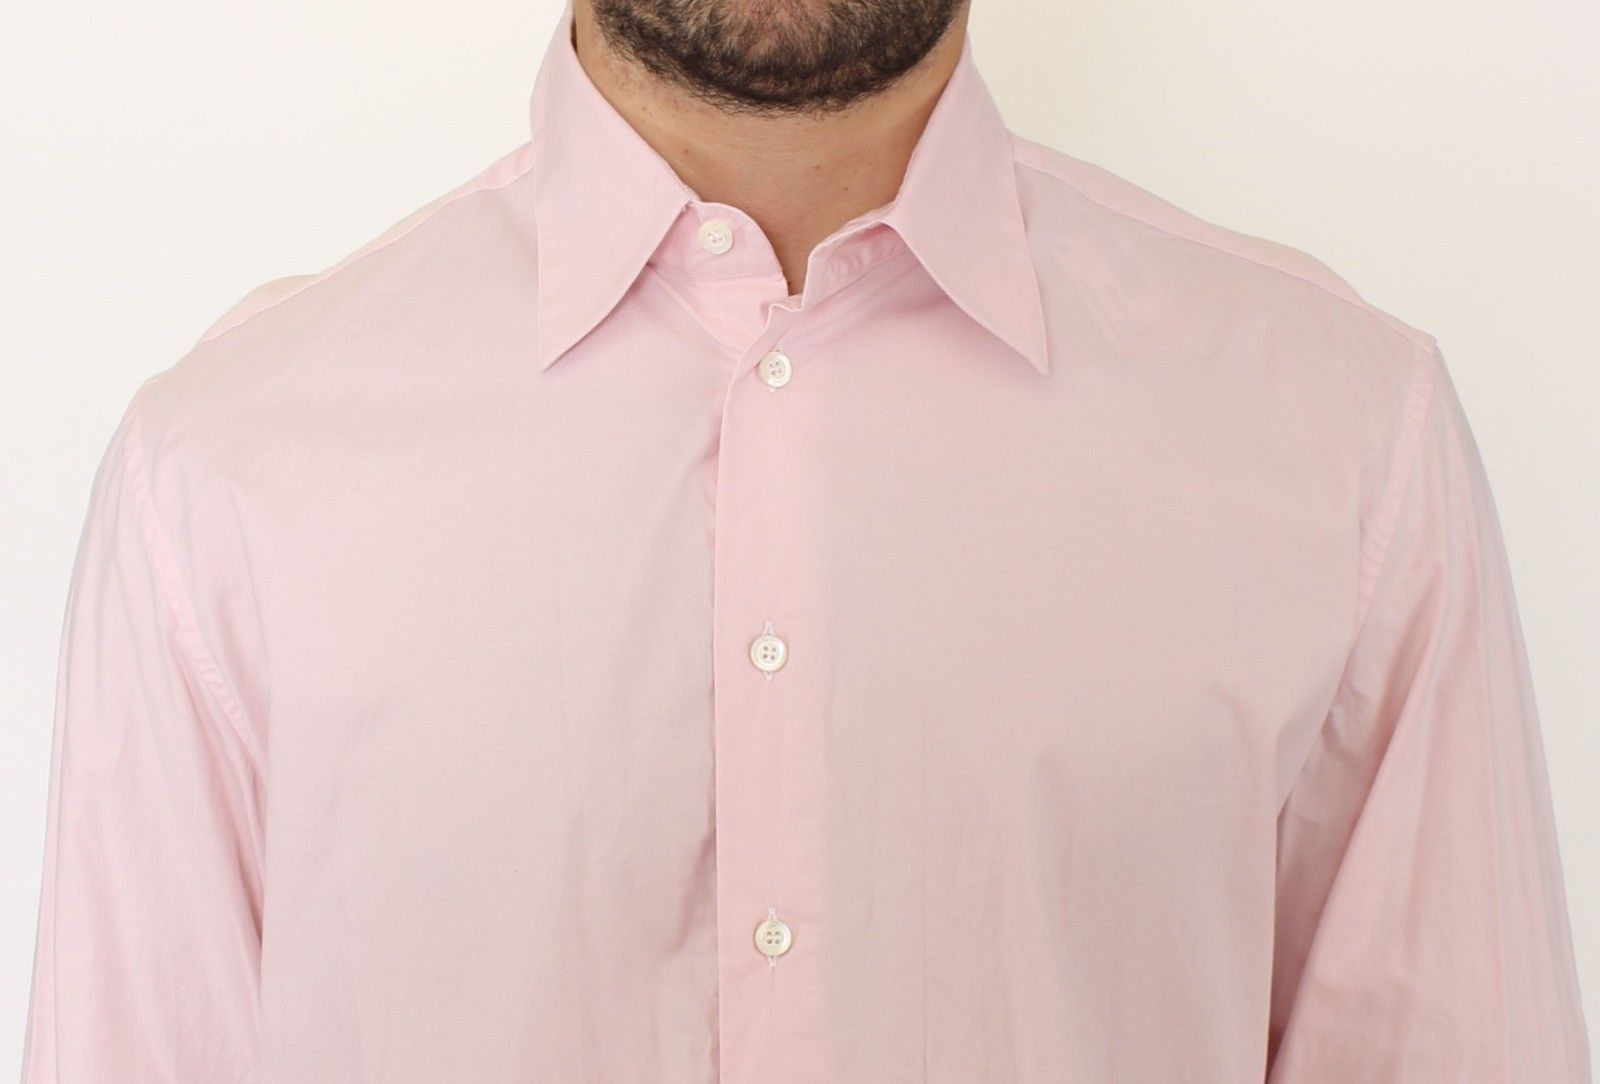 Ermanno Scervino Pink Cotton Casual Long Sleeve Long Shirt